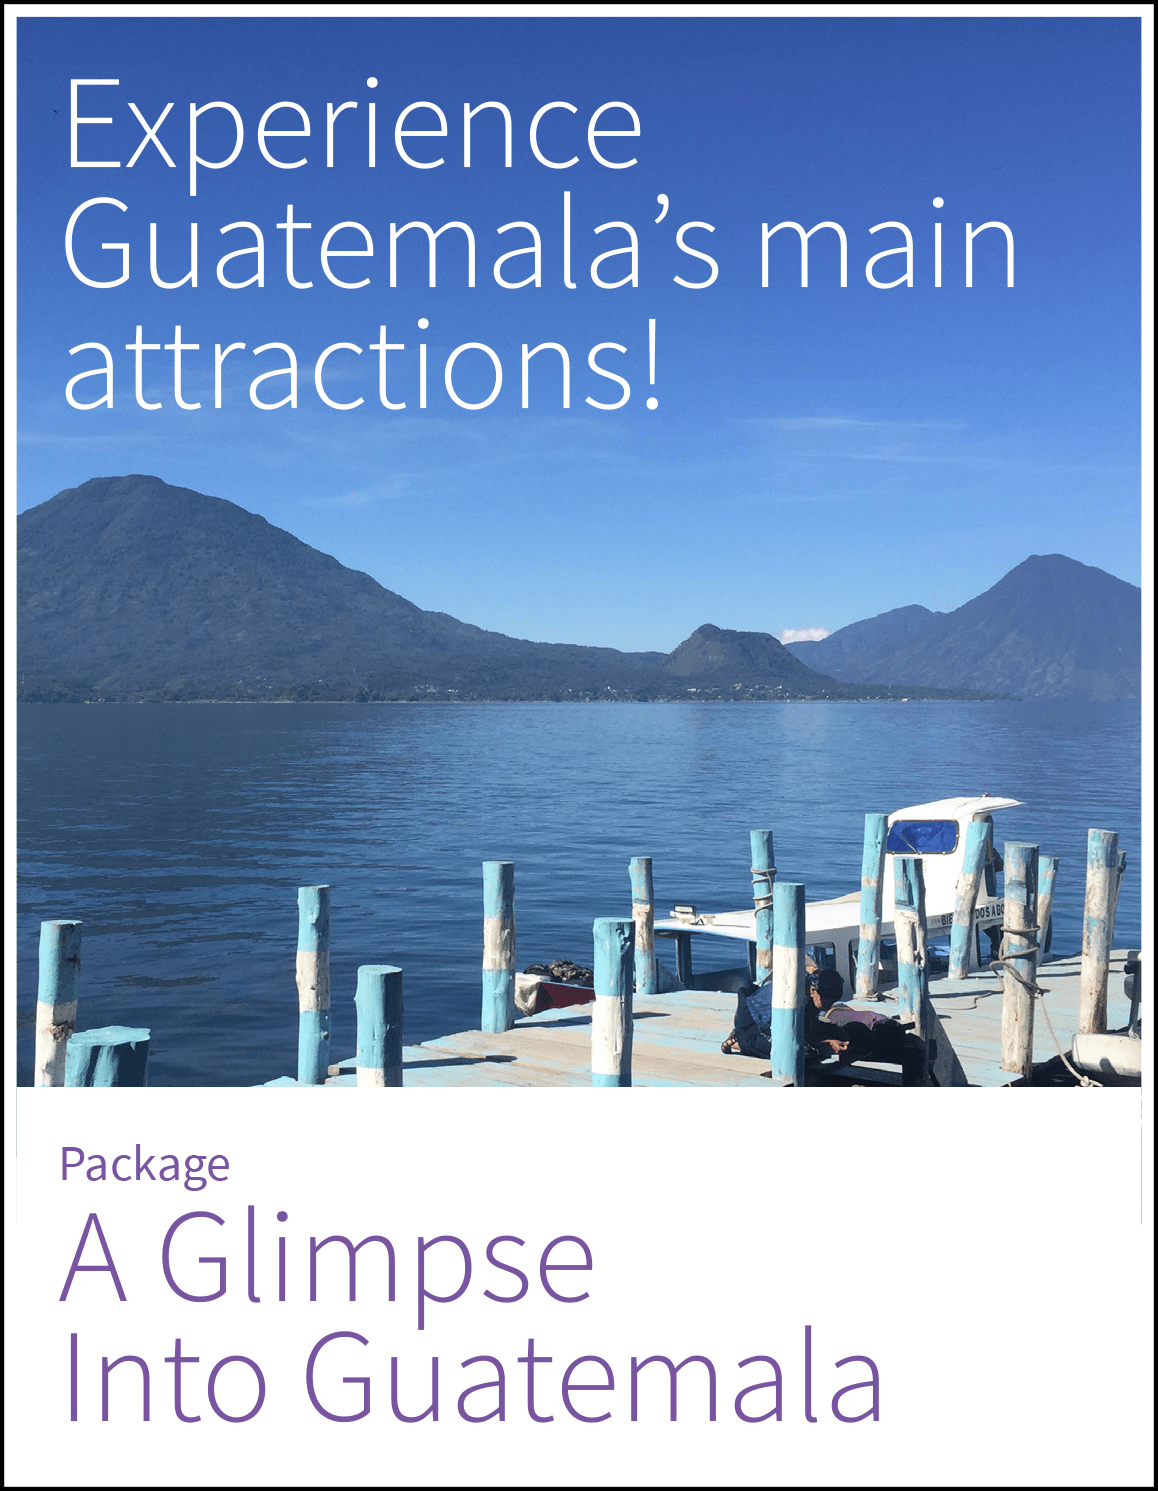 Glimpse Into Guatemala, 6-day package.